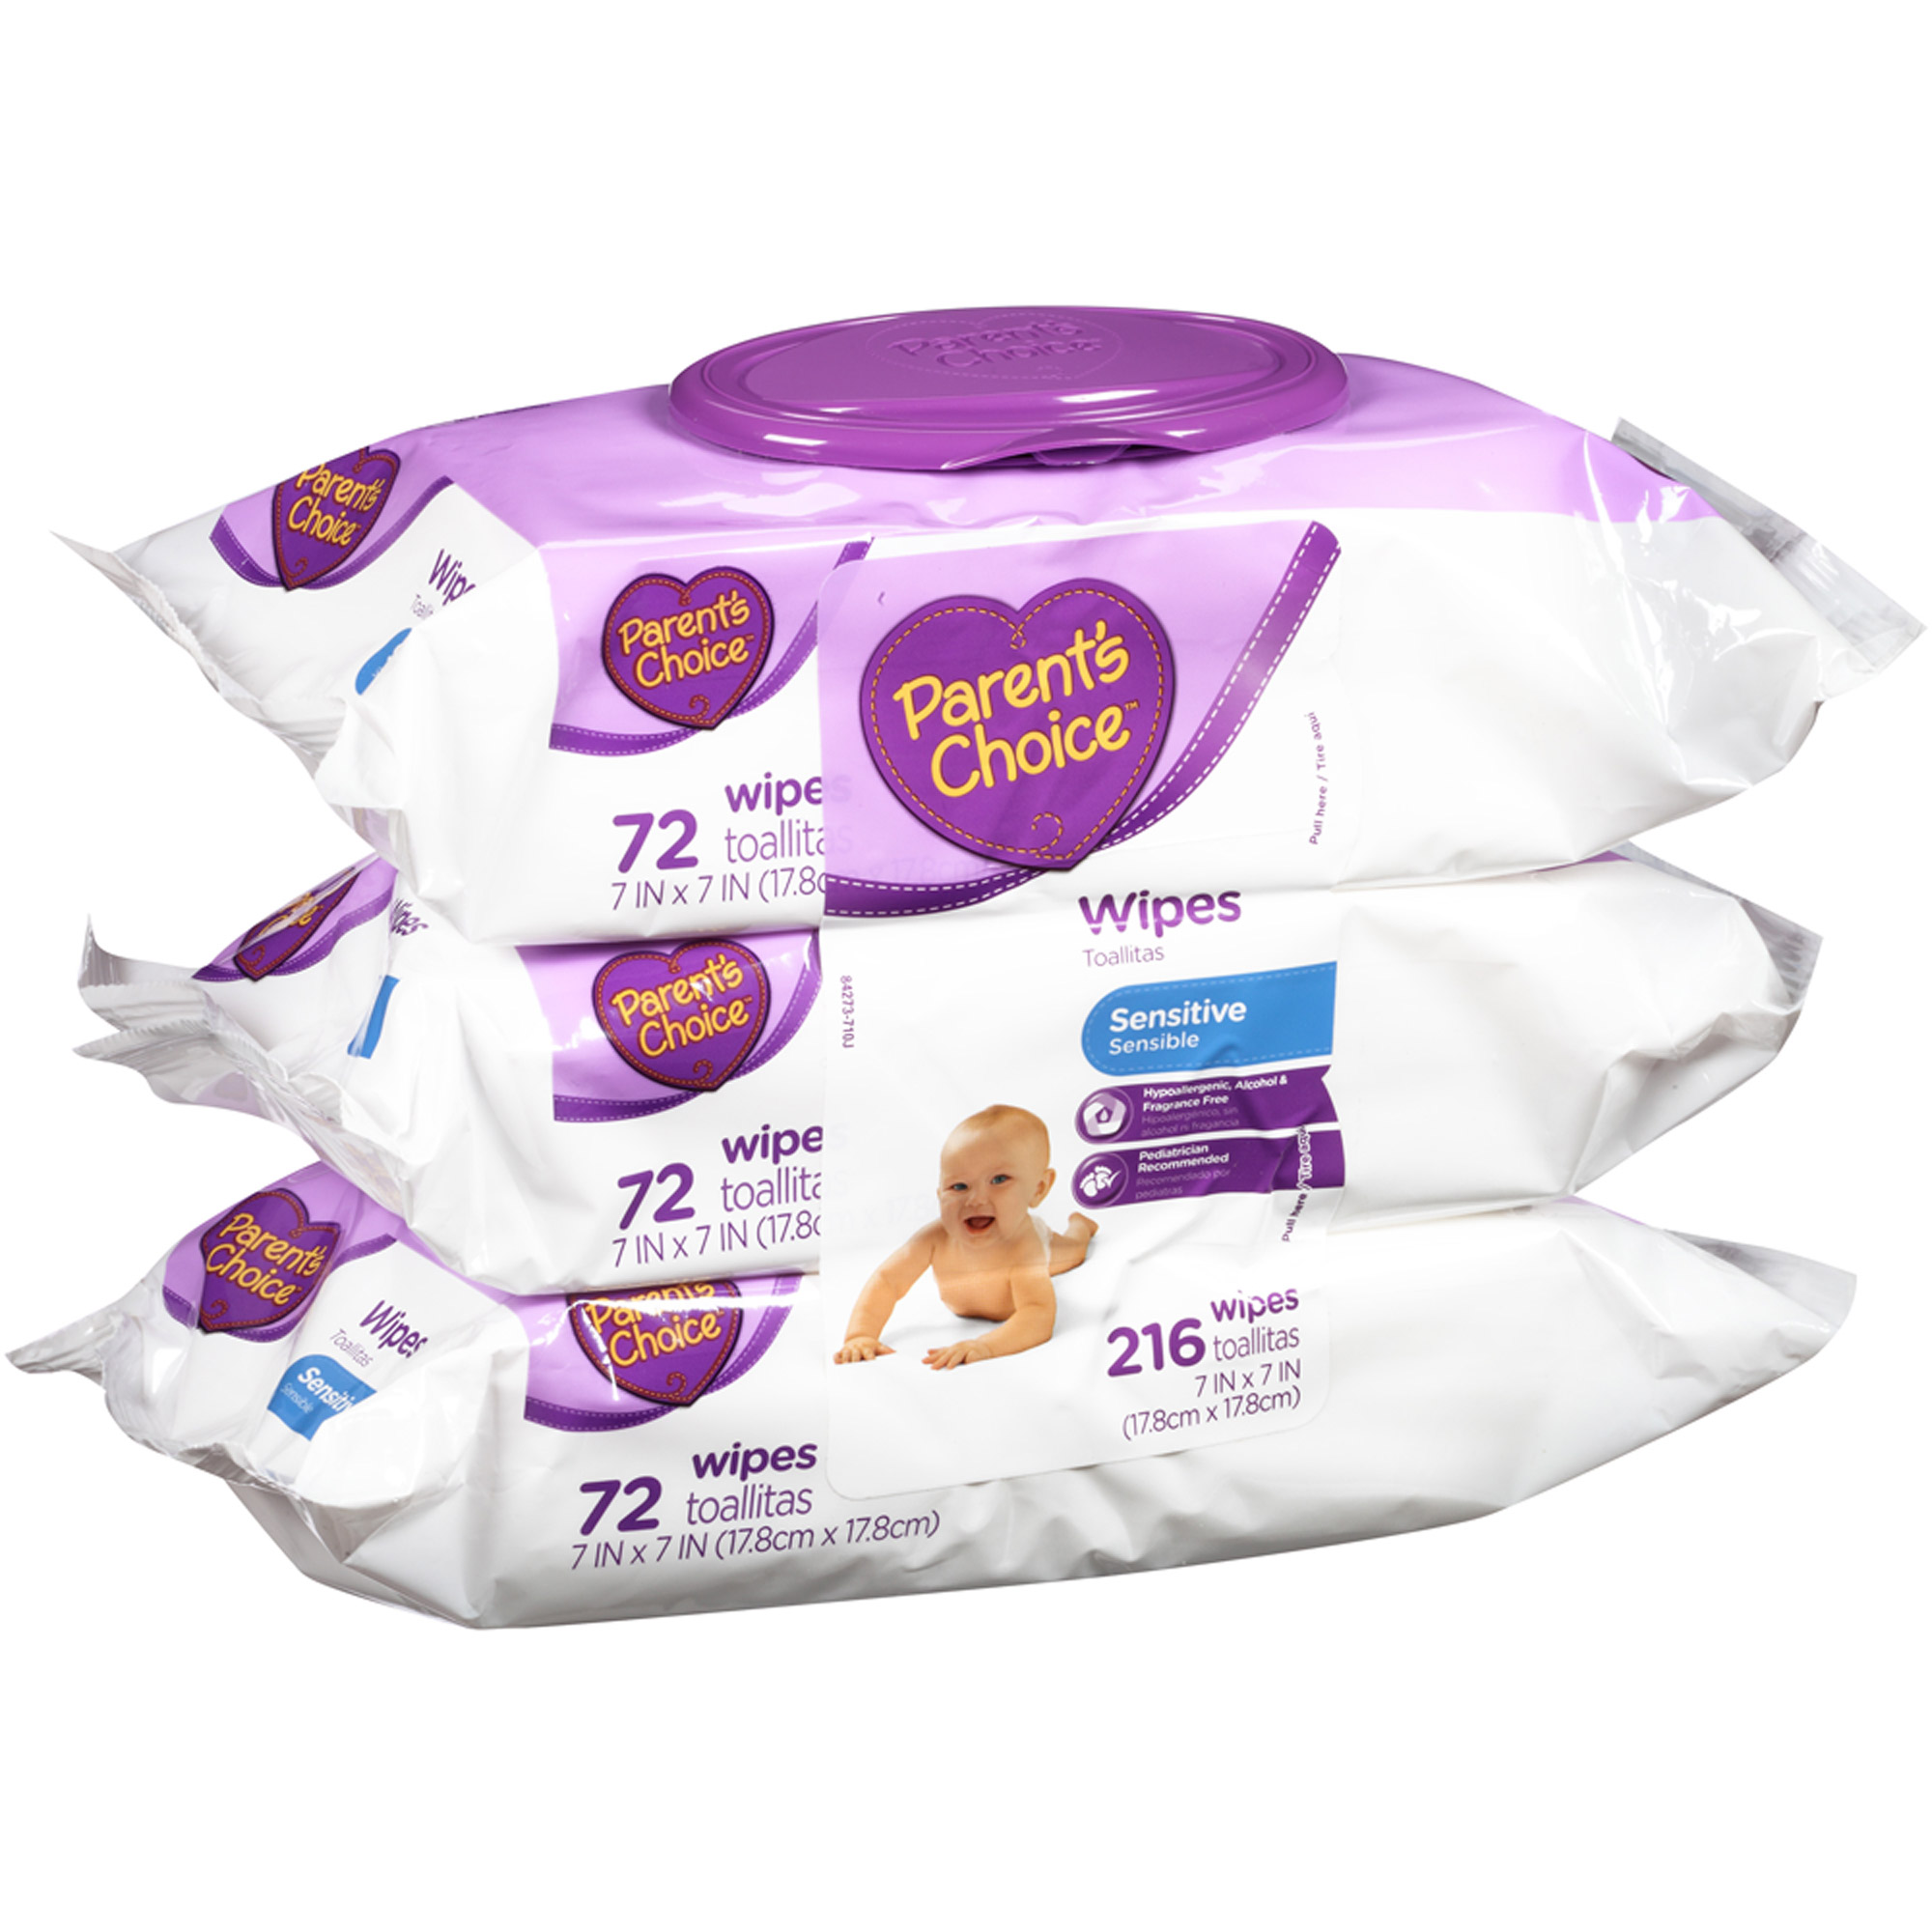 Parent's Choice Sensitive Wipes, 216 sheets